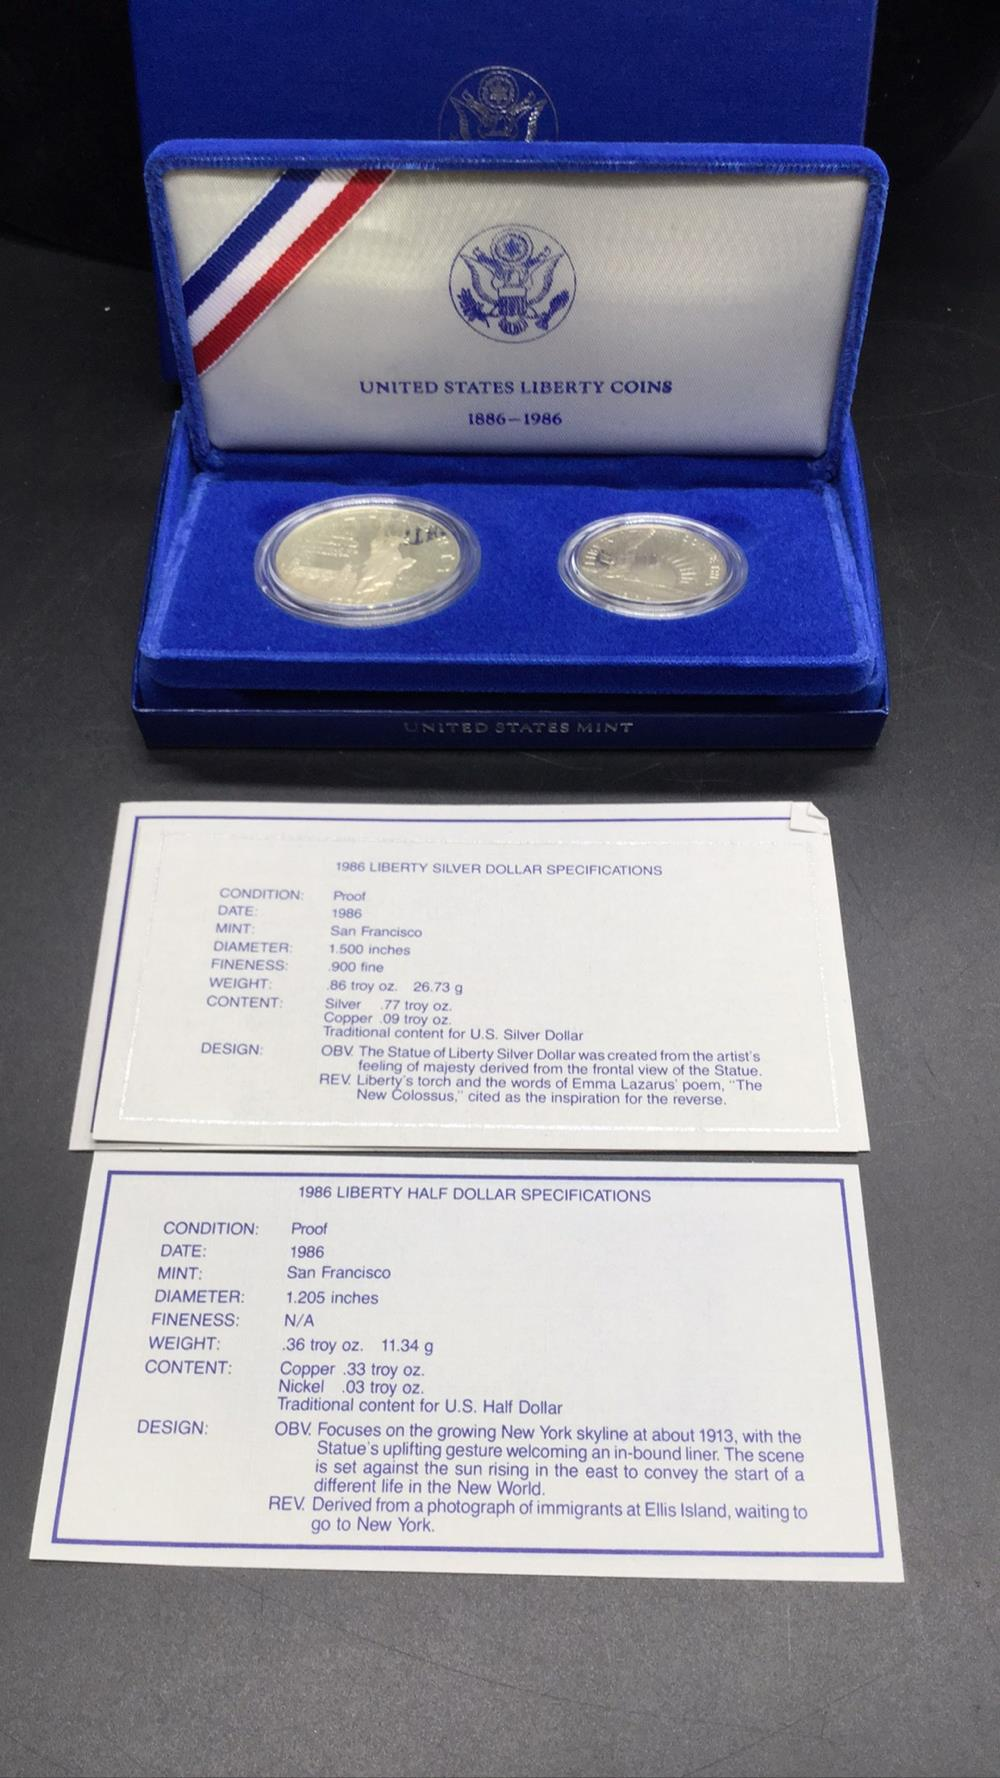 United States liberty coin set